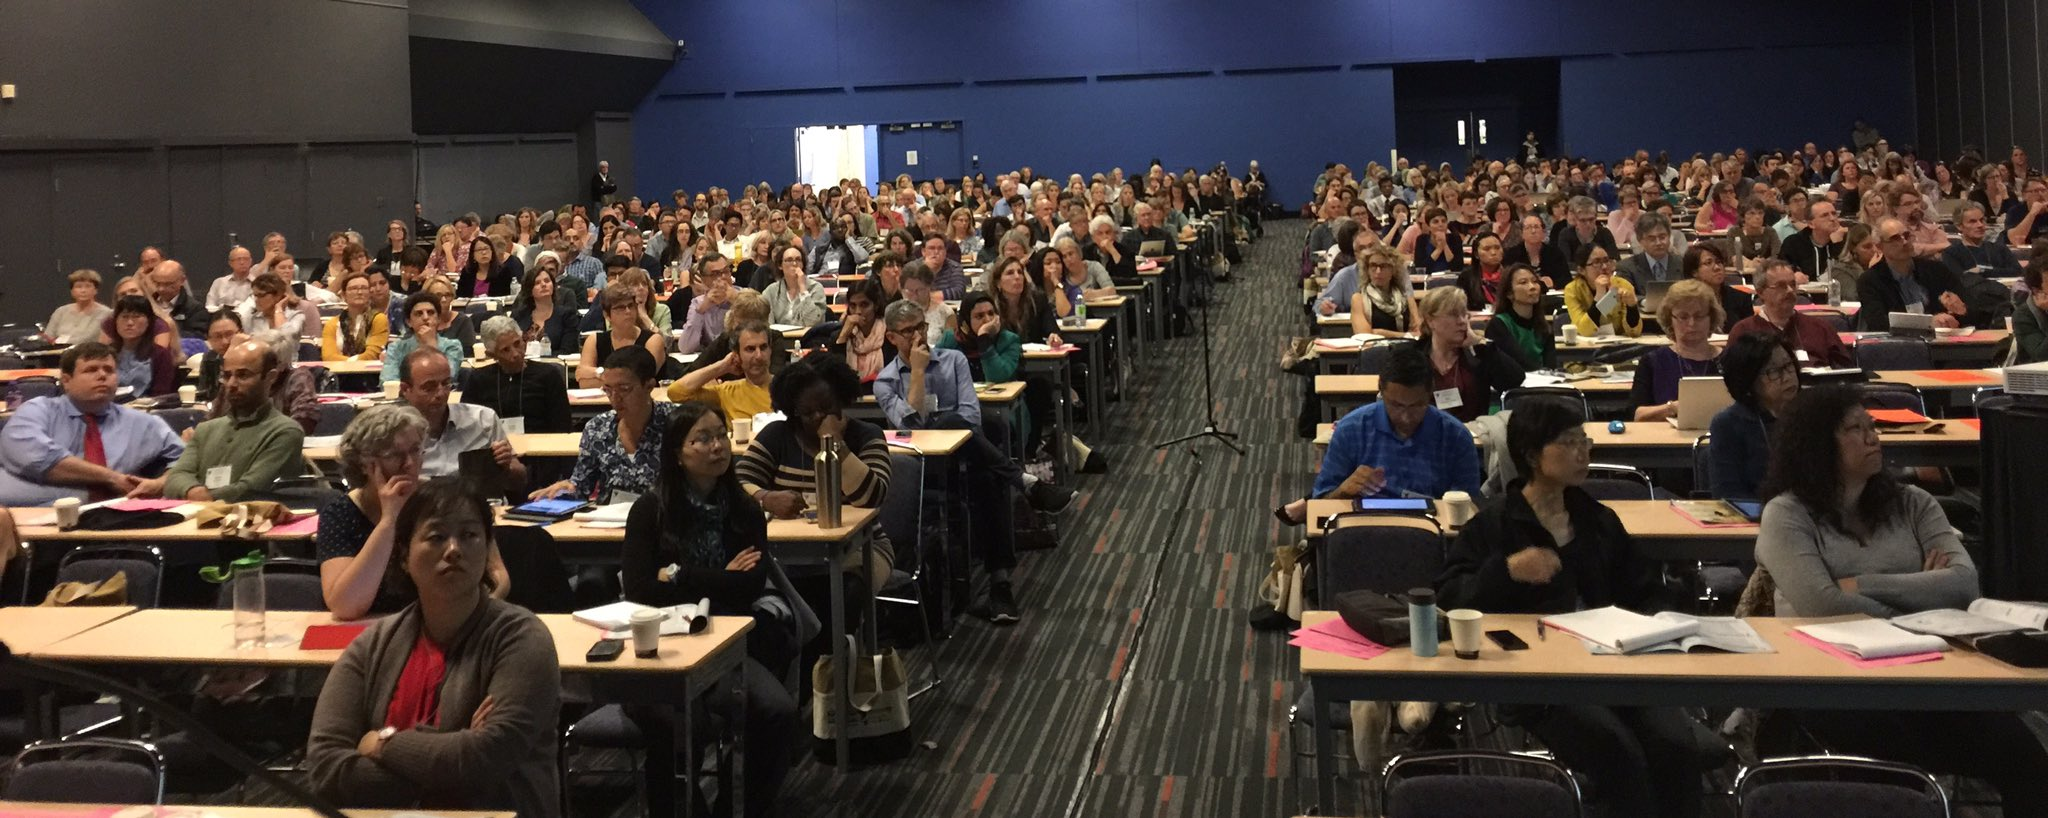 Full house at the #CSPCP hosted 2016 Master Class #palcarecongress https://t.co/MNZAL7bkZ7